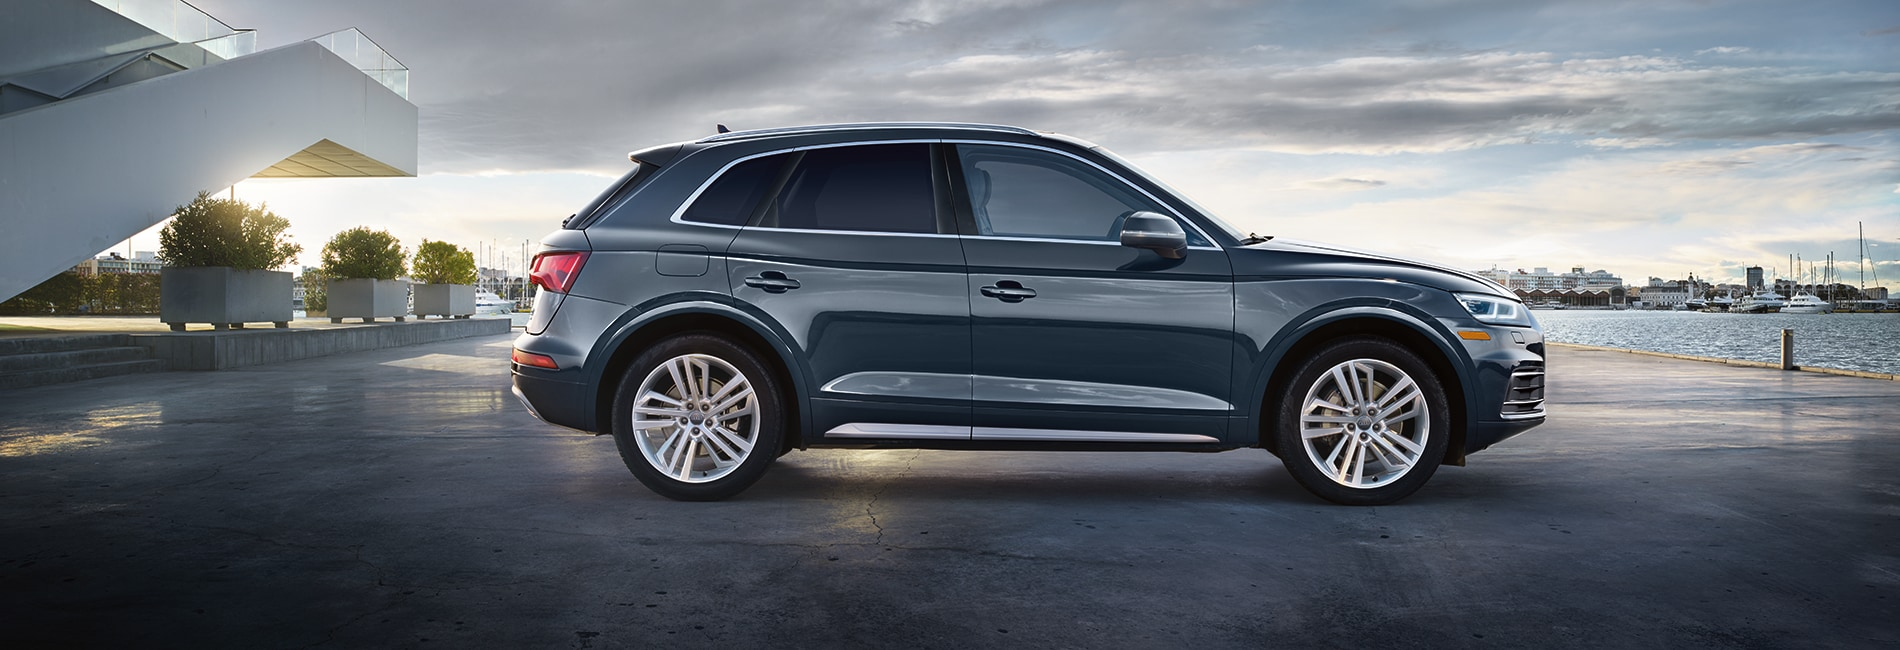 Audi Q5 Exterior Vehicle Features